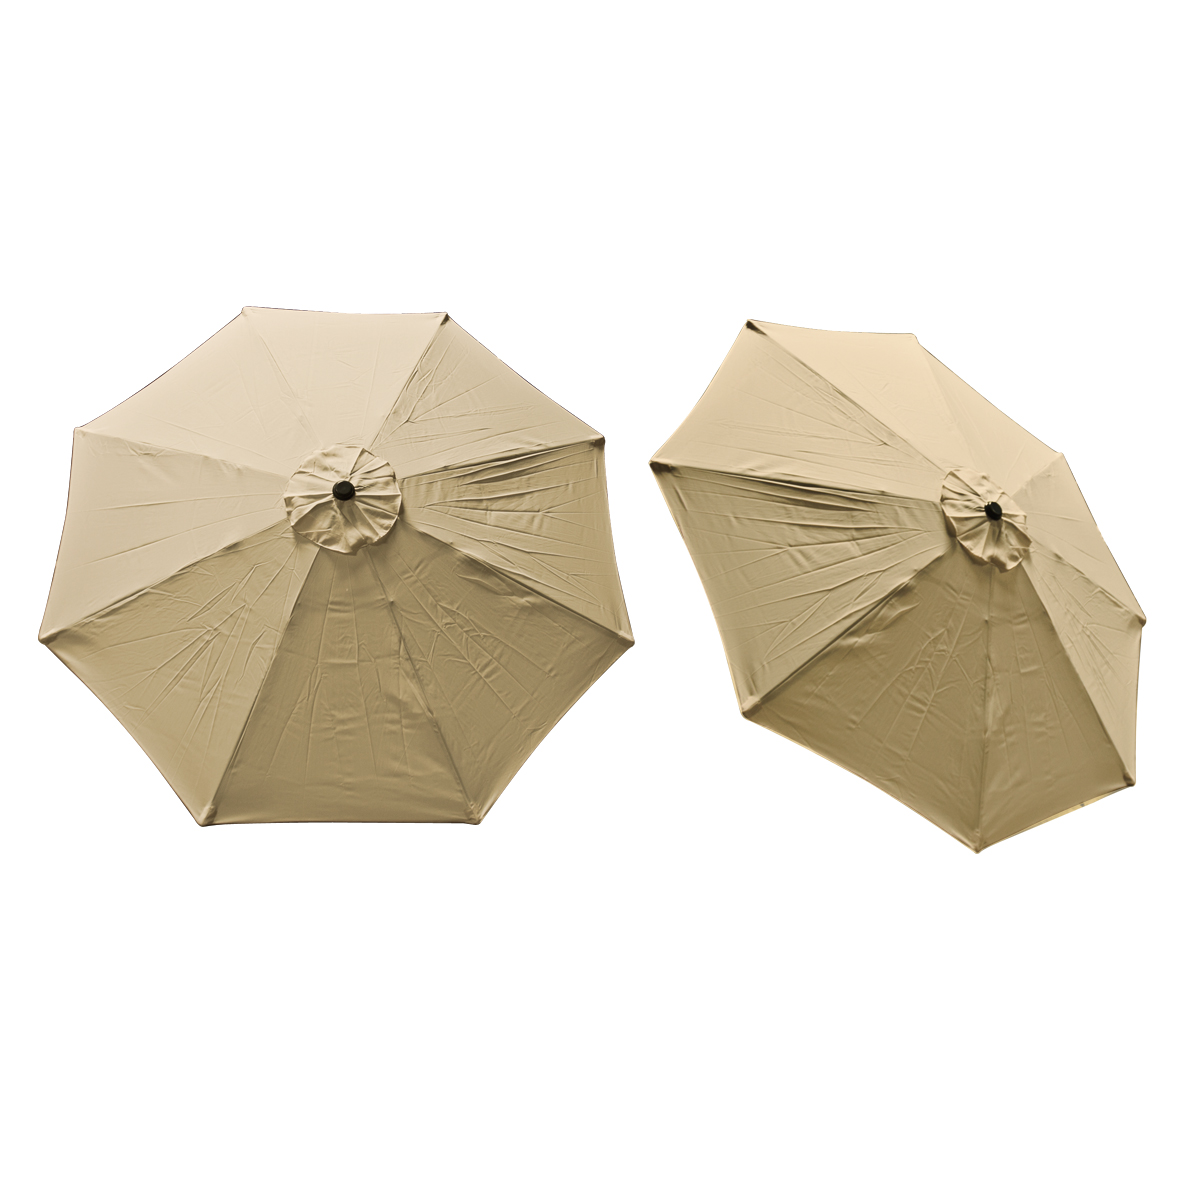 Patio Umbrella Replacement Canopy: Replacement Cover Canopy 9 FT 8 Ribs Umbrella Tan Top